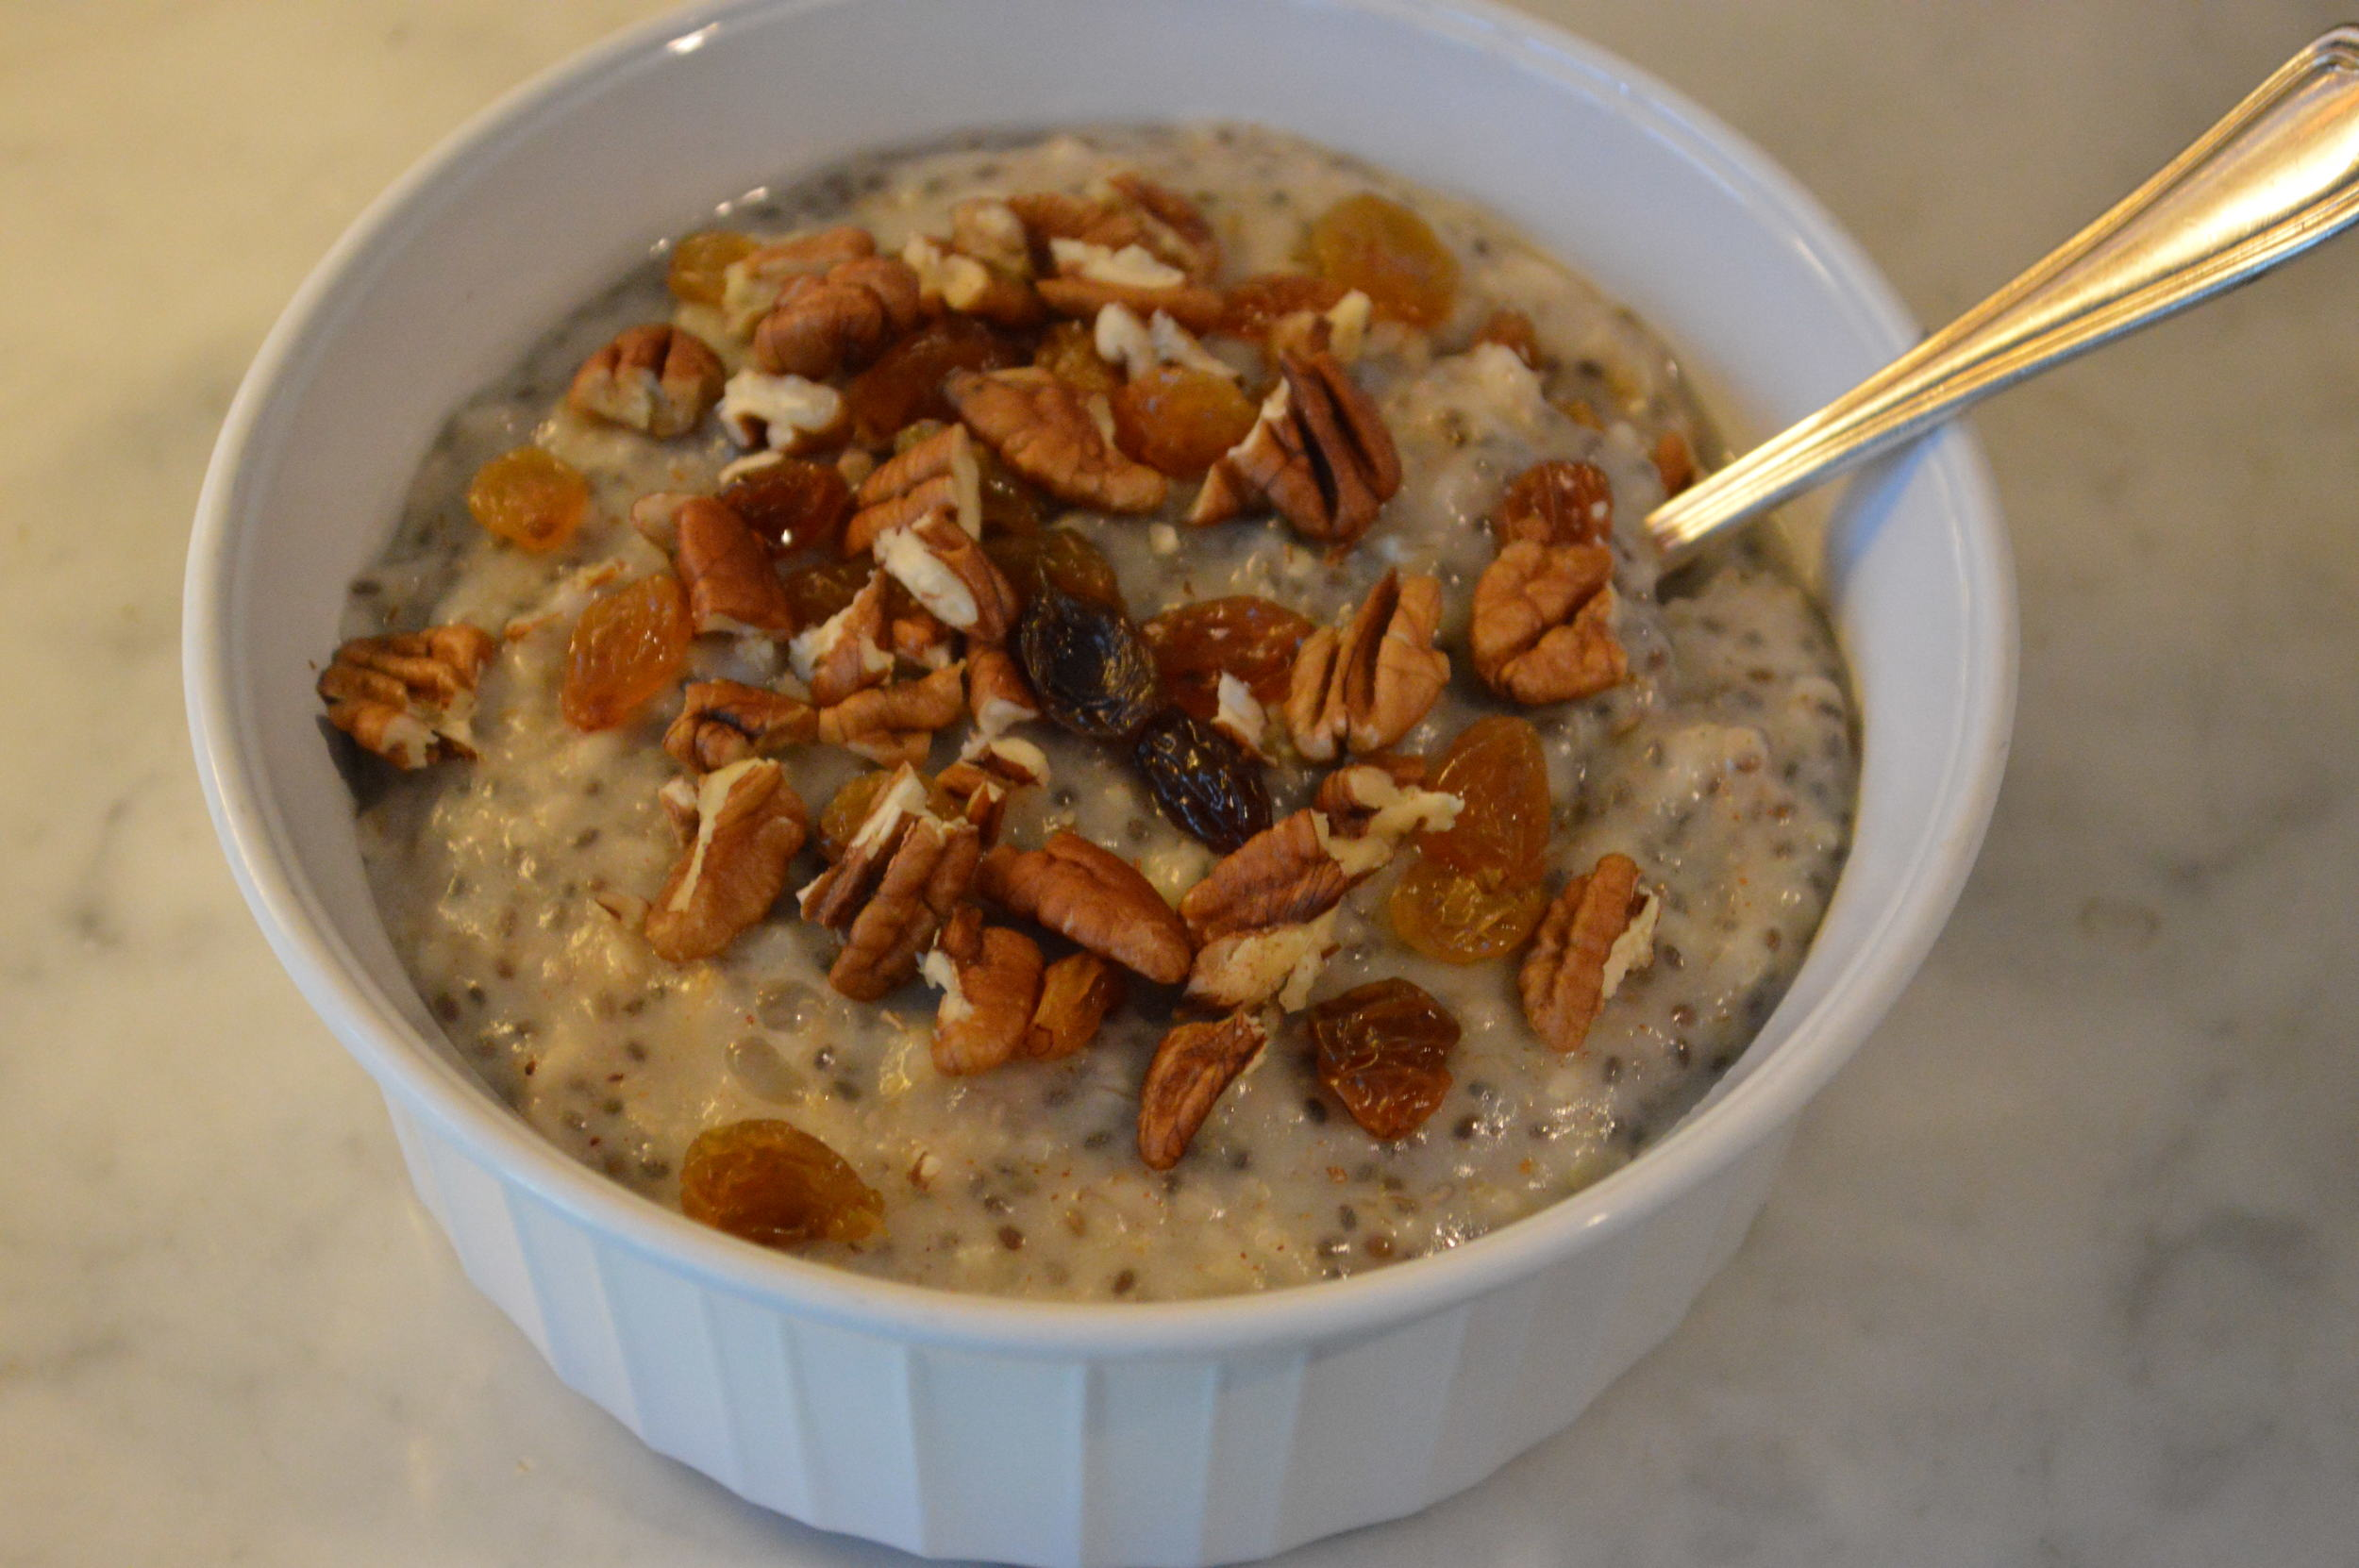 Oatmeal + Golden Raisins & Pecans